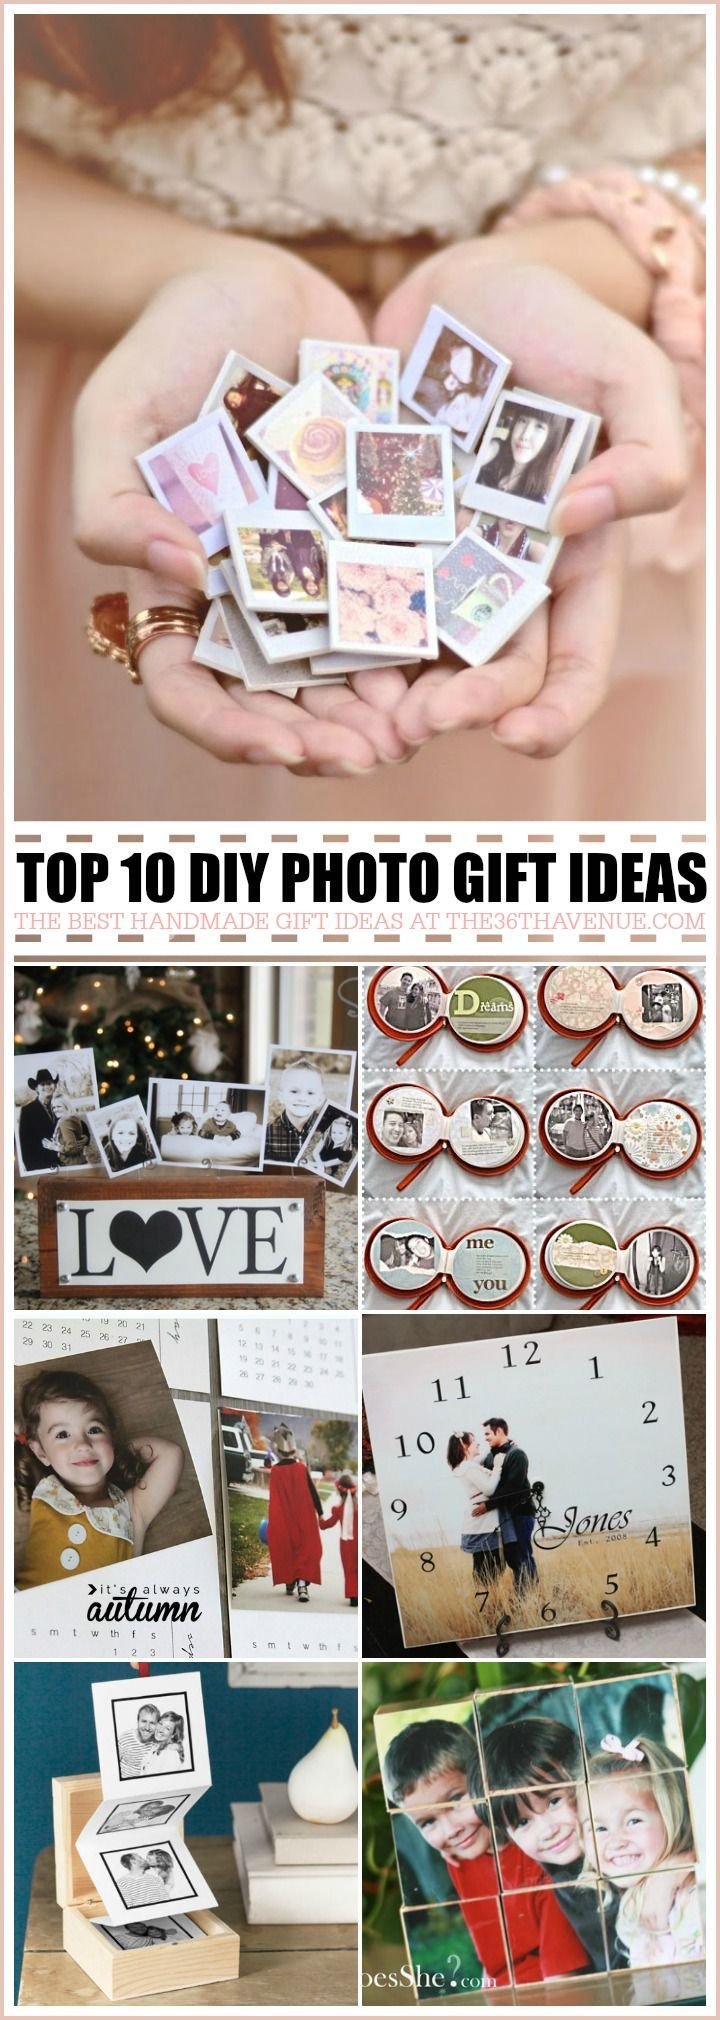 Top 10 Handmade Gifts using photos - These gifts ideas are perfect for Christmas gifts, birthday presents, Mother's Day Gifts and Anniversary Gifts... These handmade gift ideas are super easy to make, adorable, and affordable... MUST RE-PIN!: